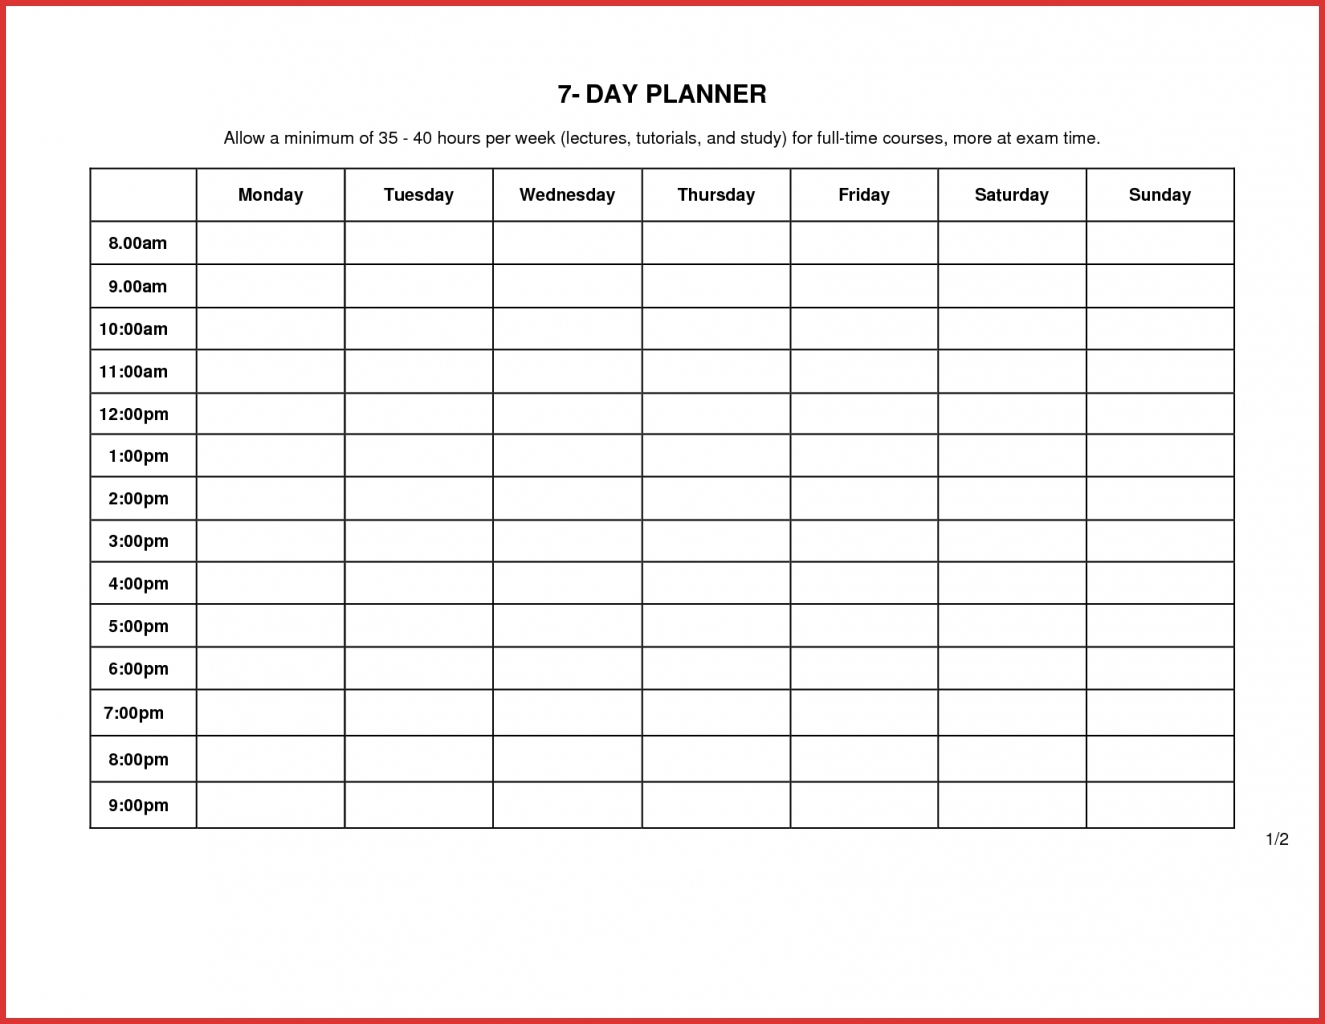 7 Day 12 Week Planner Blank | Template Calendar Printable intended for 12 Week Blank Calendar Printable